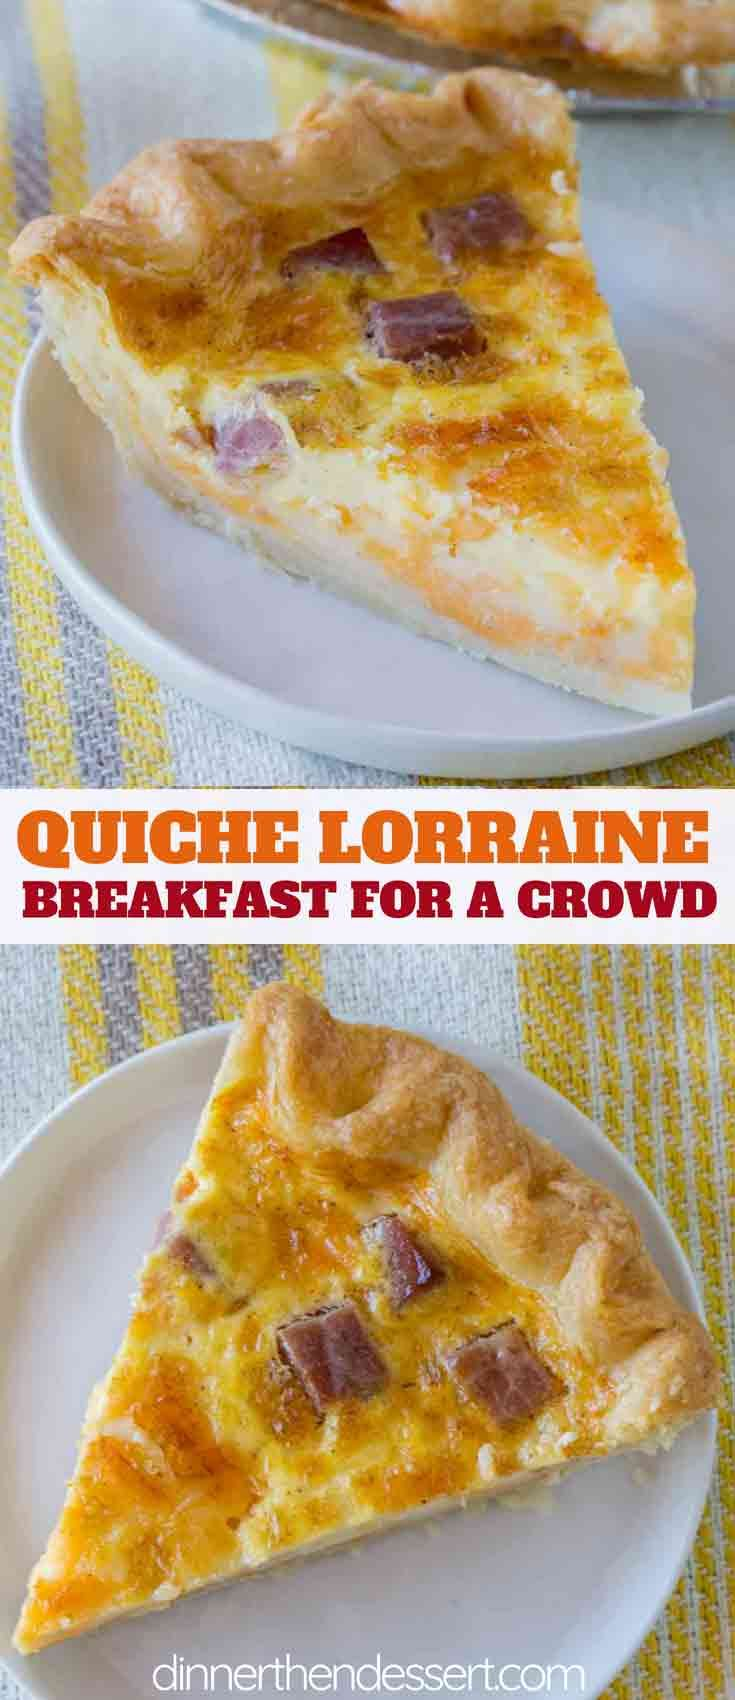 Quiche Lorraine made with bacon, onions and swiss cheese in a flaky pie crust makes an easy breakfa